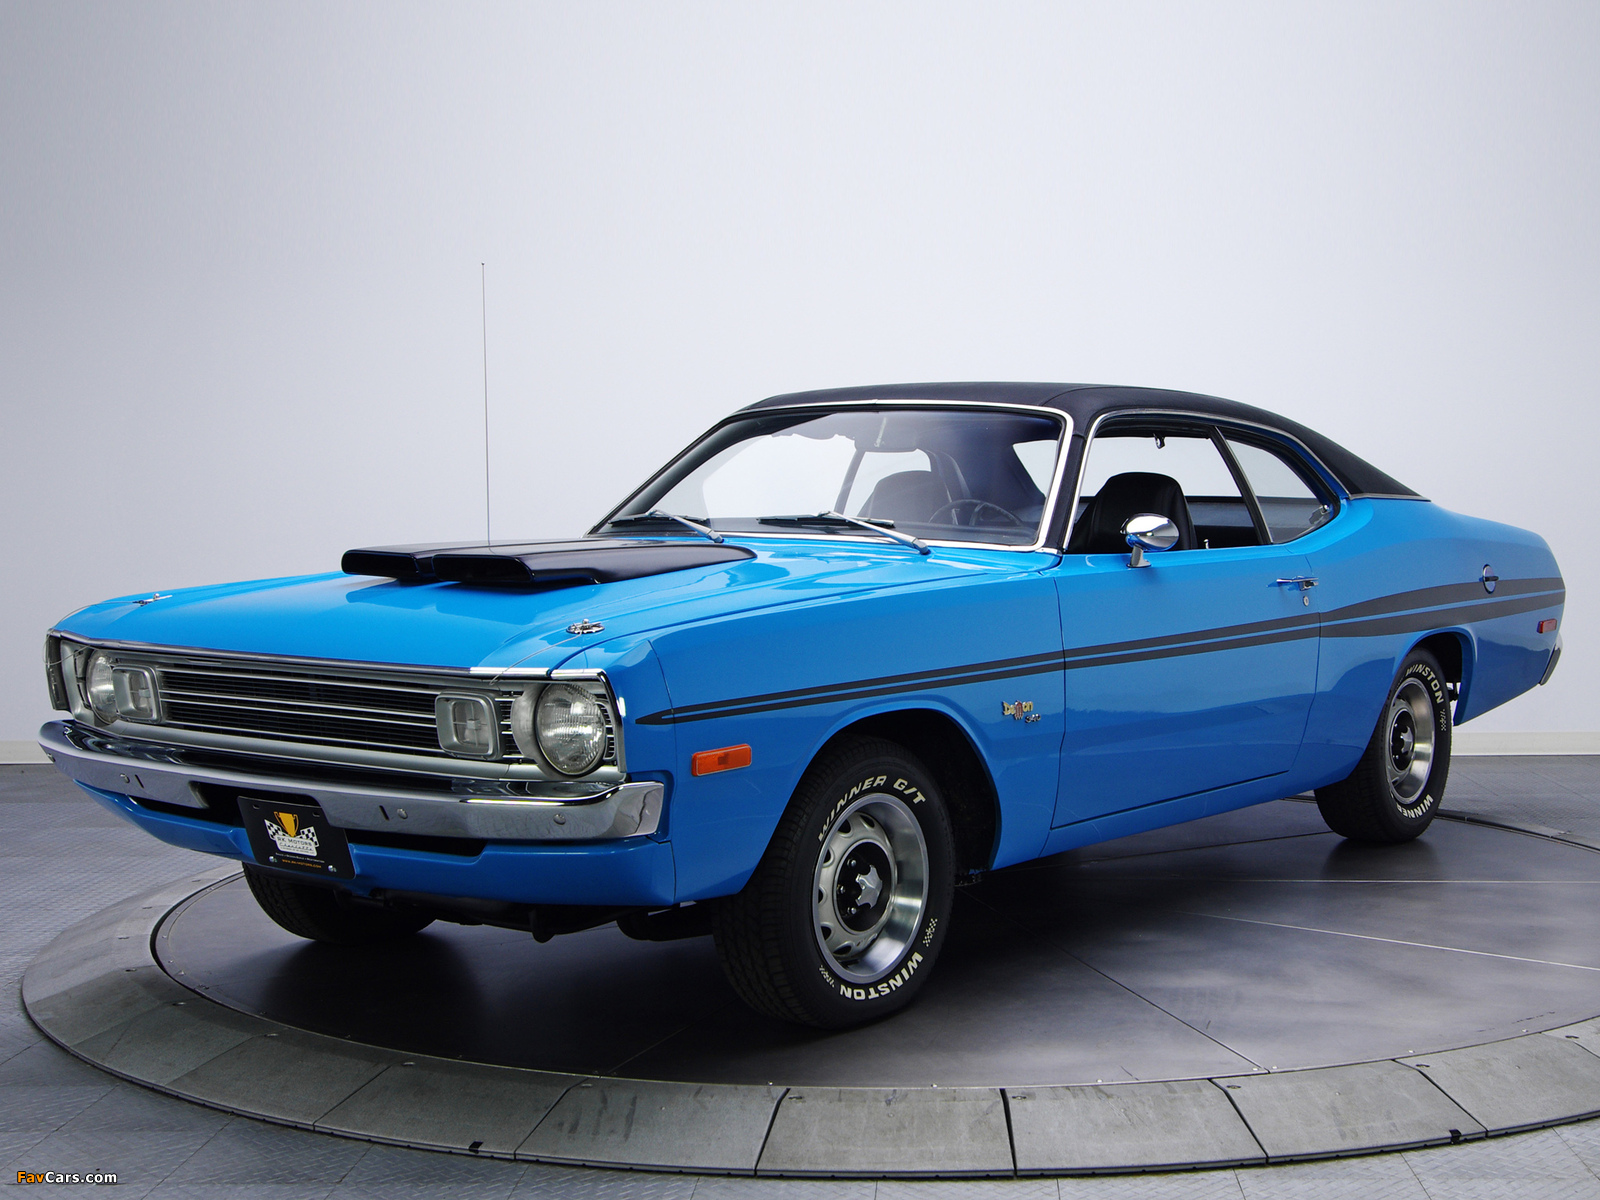 Dodge Dart Demon 340 (LM29) 1972 wallpapers (1600 x 1200)